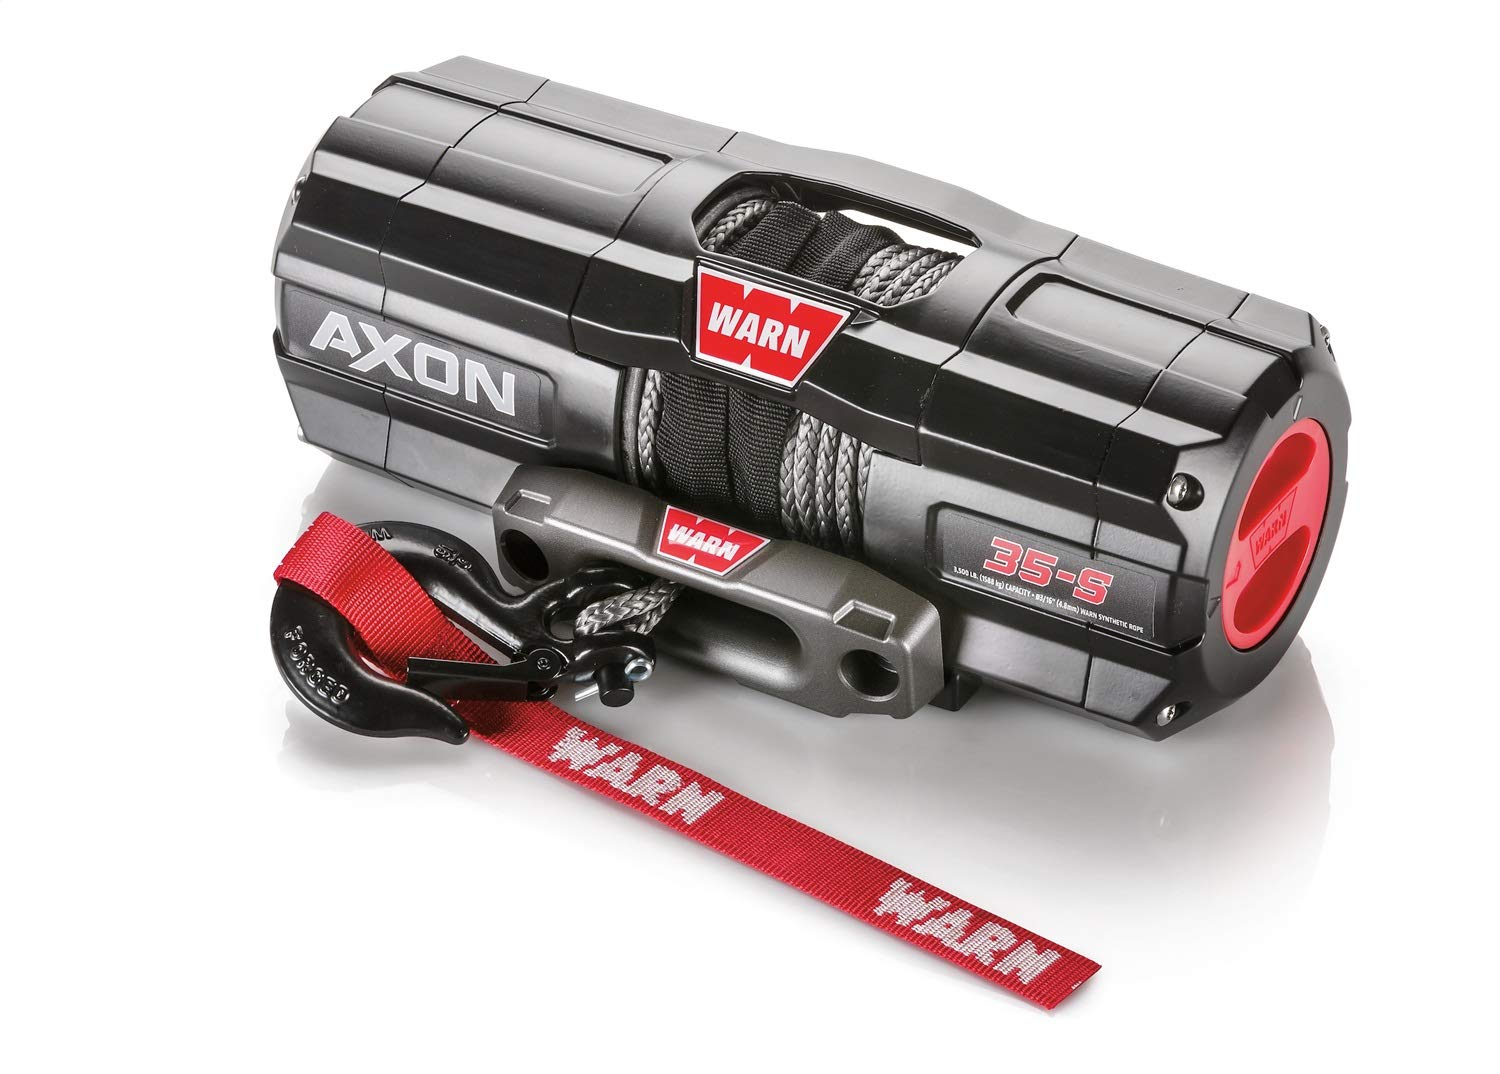 WARN 101130 AXON 35-S Powersports Winch With Spydura Synthetic Rope